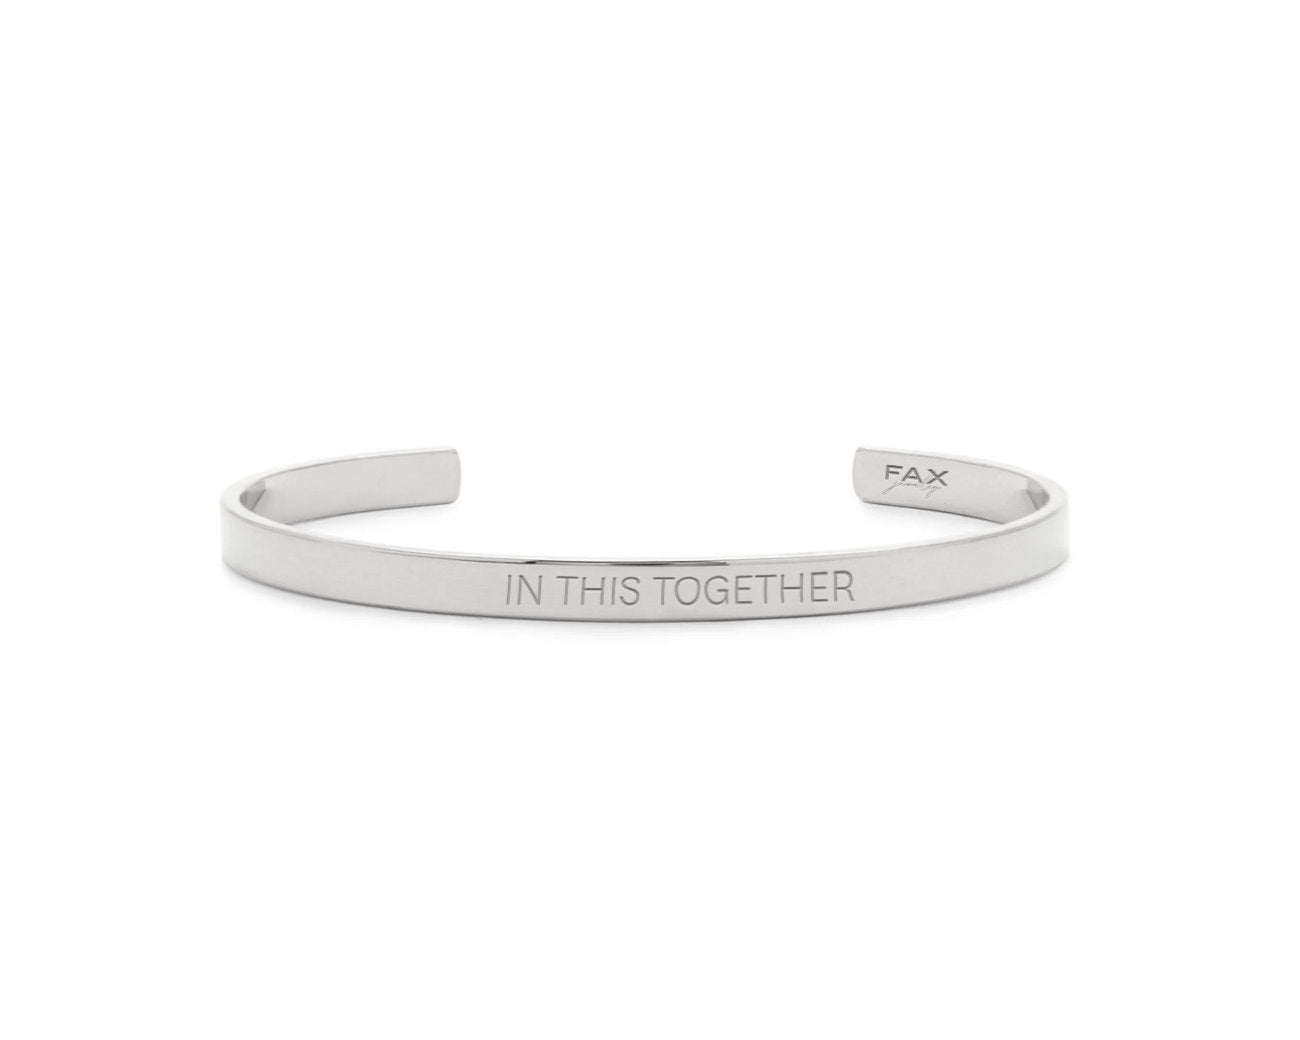 FAX Jewlery | In This Together Cuff Bracelet | Stainless Steel | COVID-19 Fundraiser